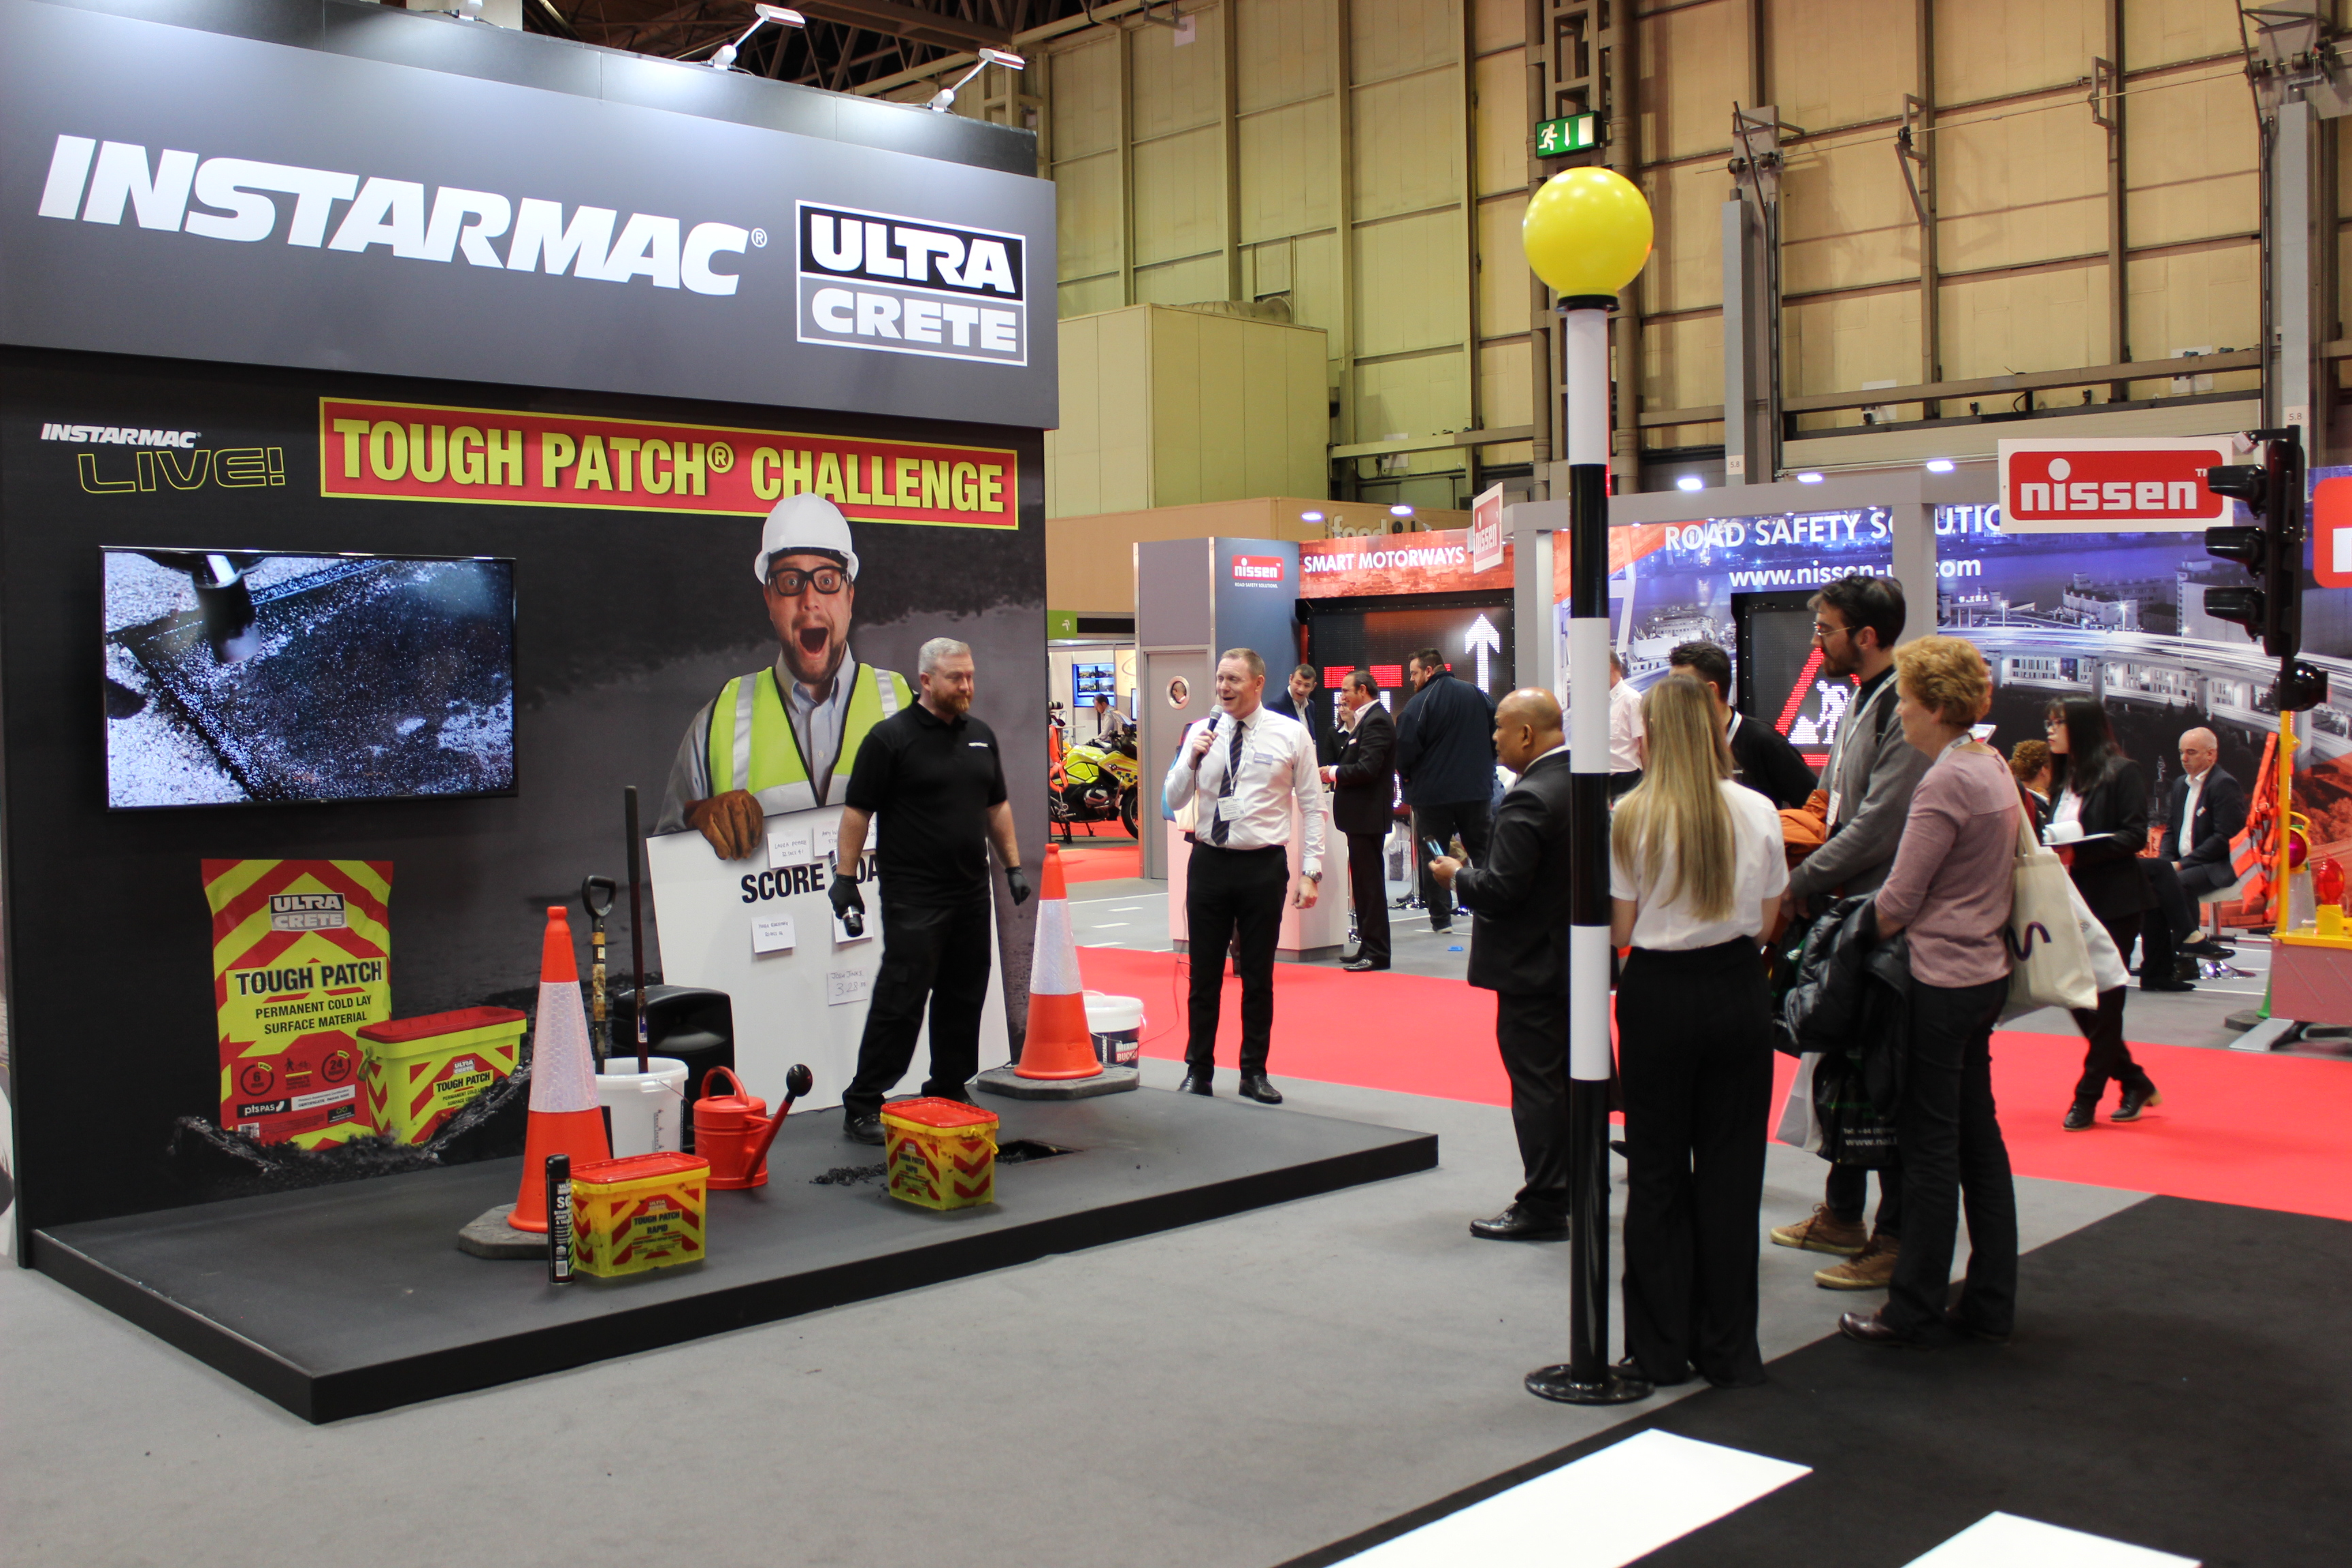 Instarmac impresses with live displays at Traffex image